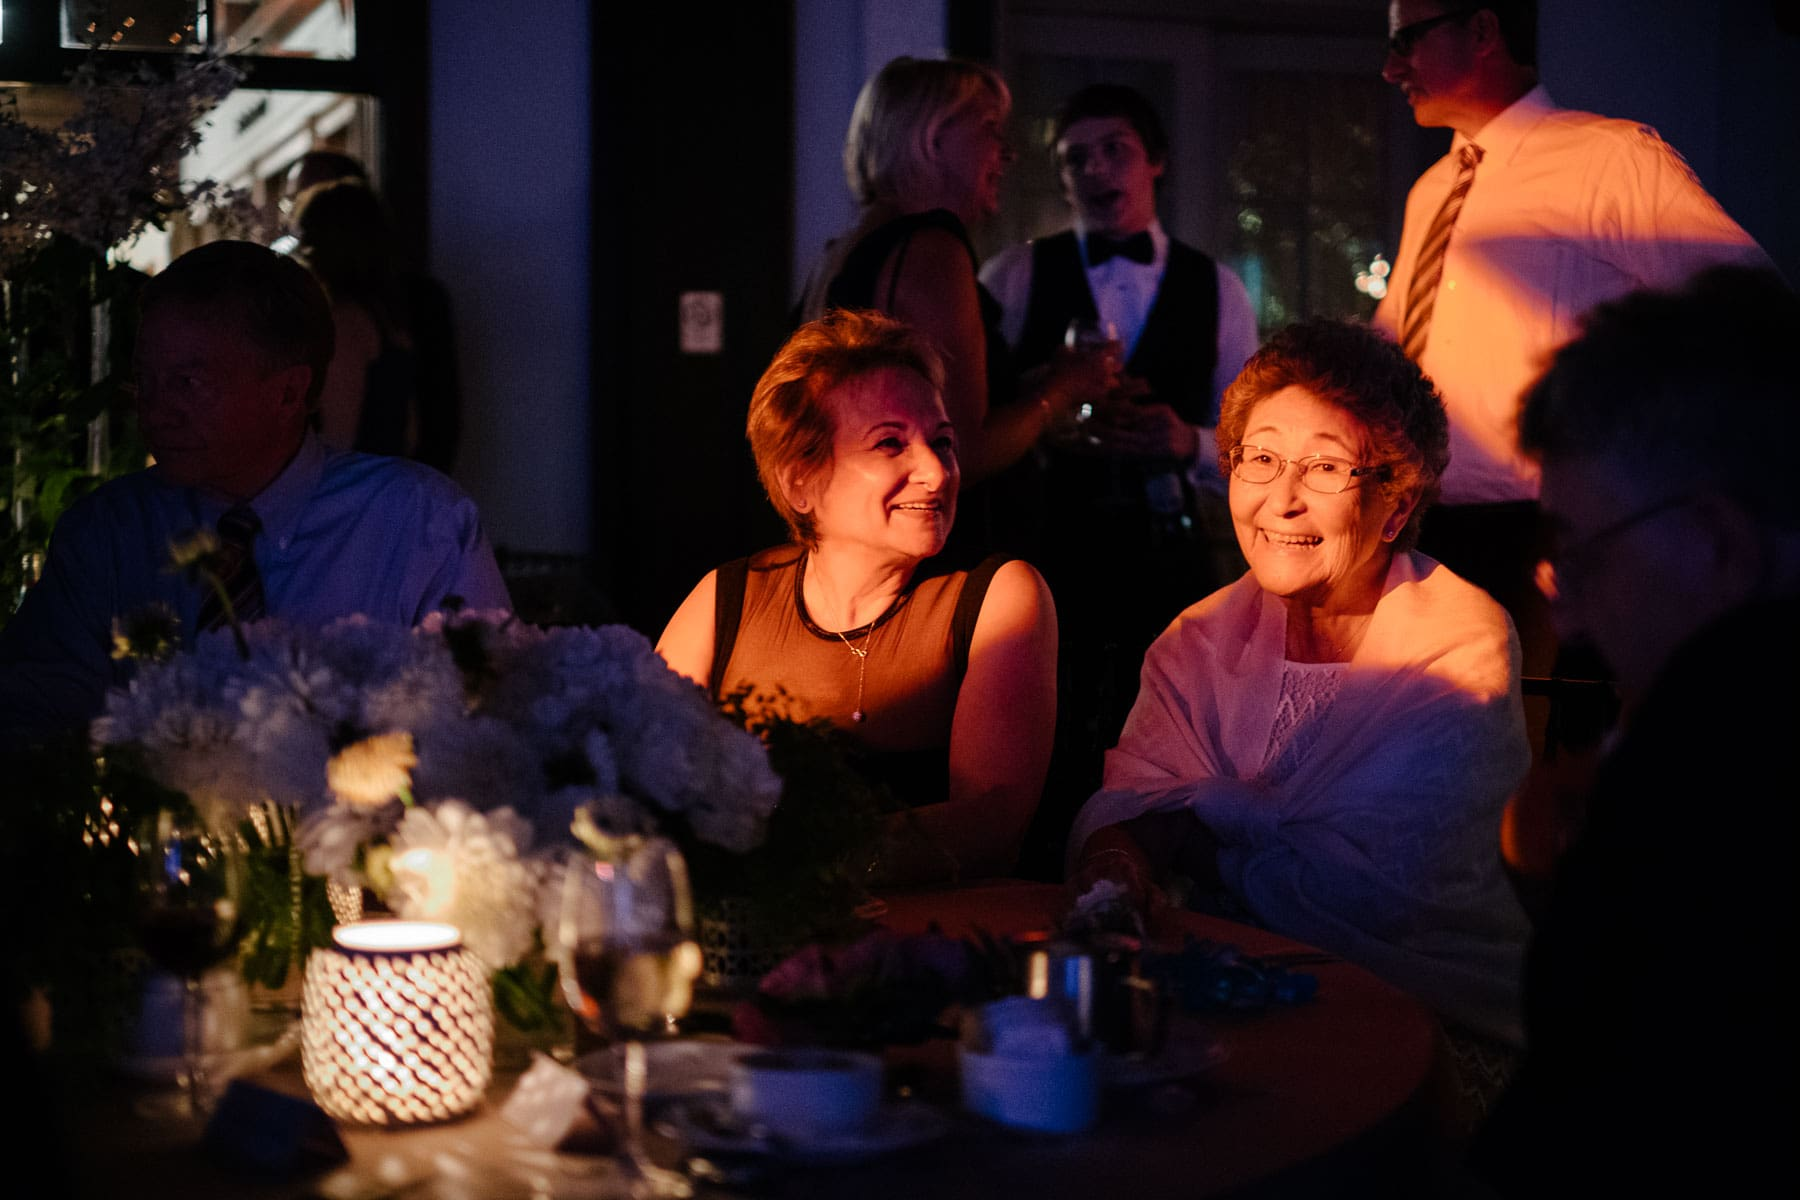 Two elderly ladies are smiling with orange light shined on them at the Boulevard Club wedding in Toronto.